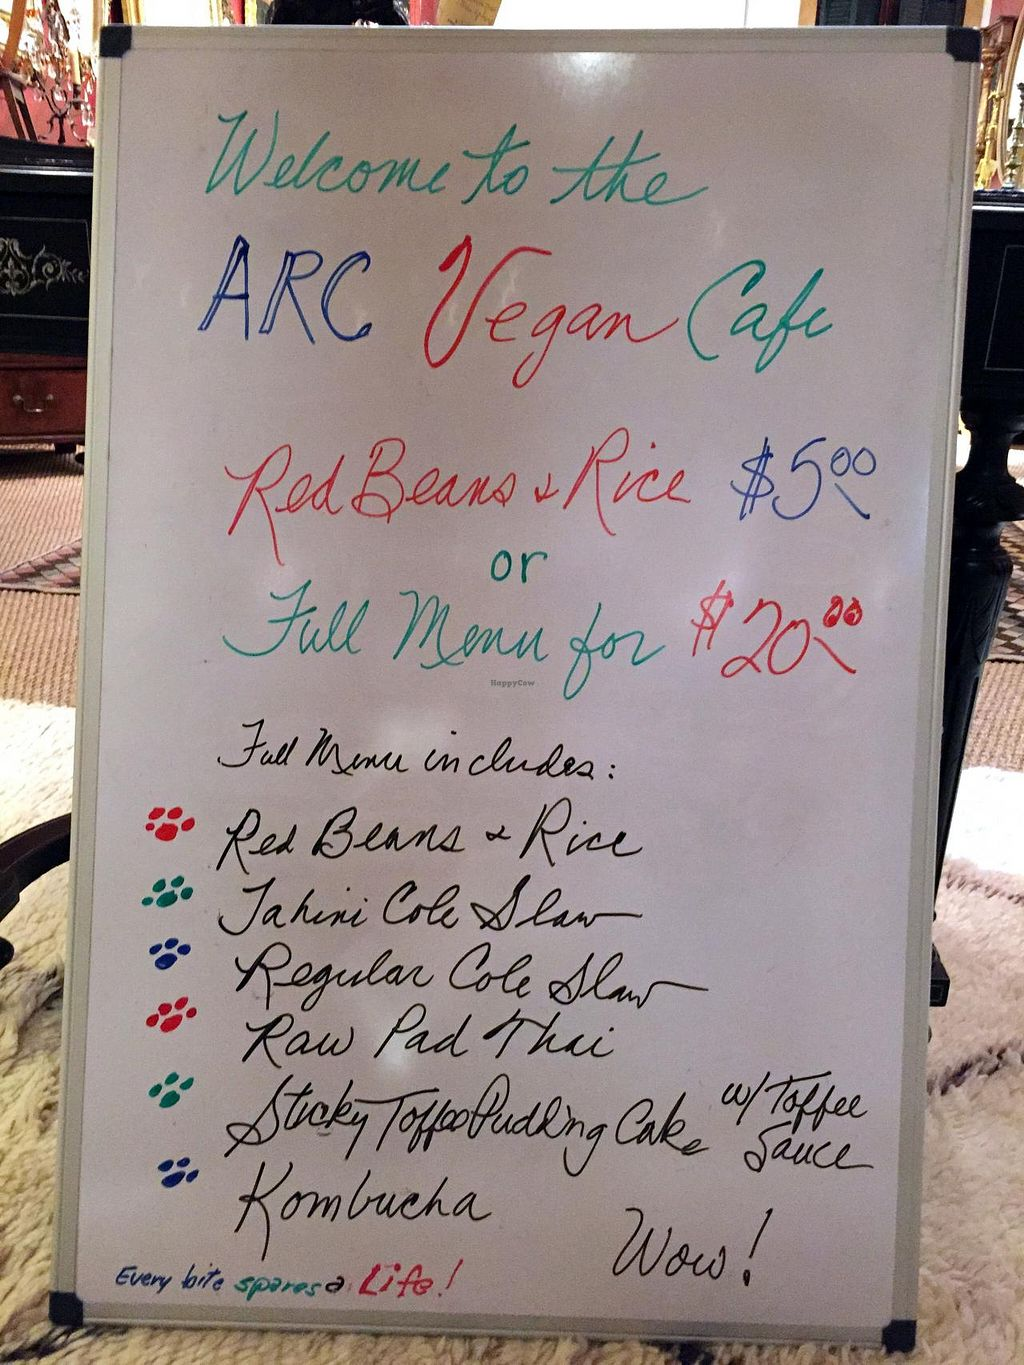 """Photo of ARC  by <a href=""""/members/profile/TraceyNarayaniGlover"""">TraceyNarayaniGlover</a> <br/>ARC cafe menu from Feb, 2015 (menu changes monthly) <br/> April 4, 2015  - <a href='/contact/abuse/image/57146/97805'>Report</a>"""